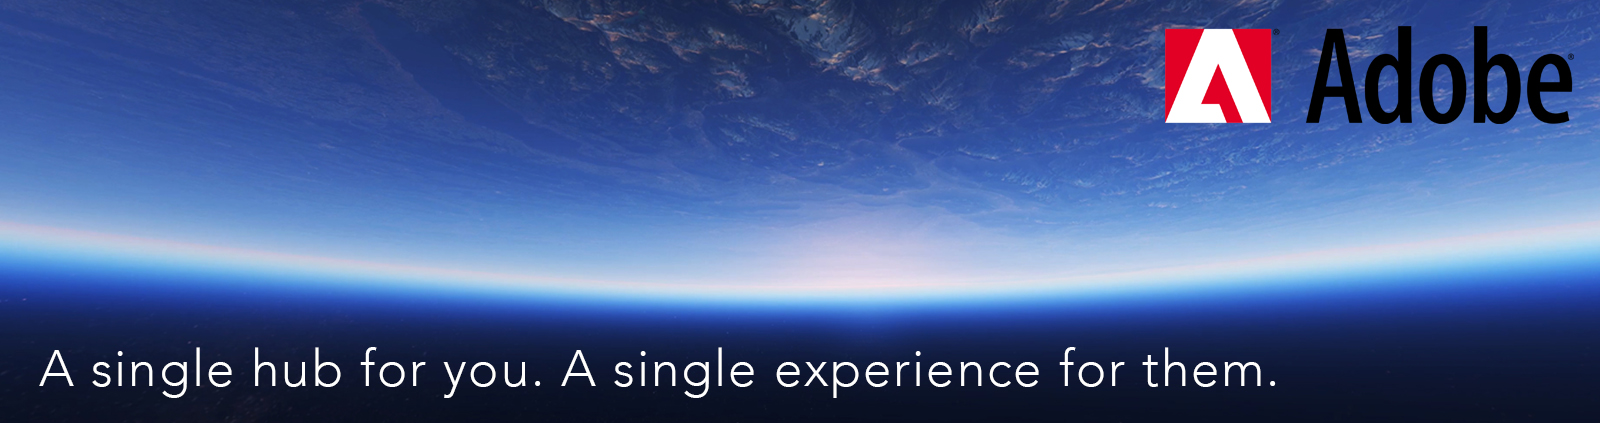 A single hub for you. A single experience for them